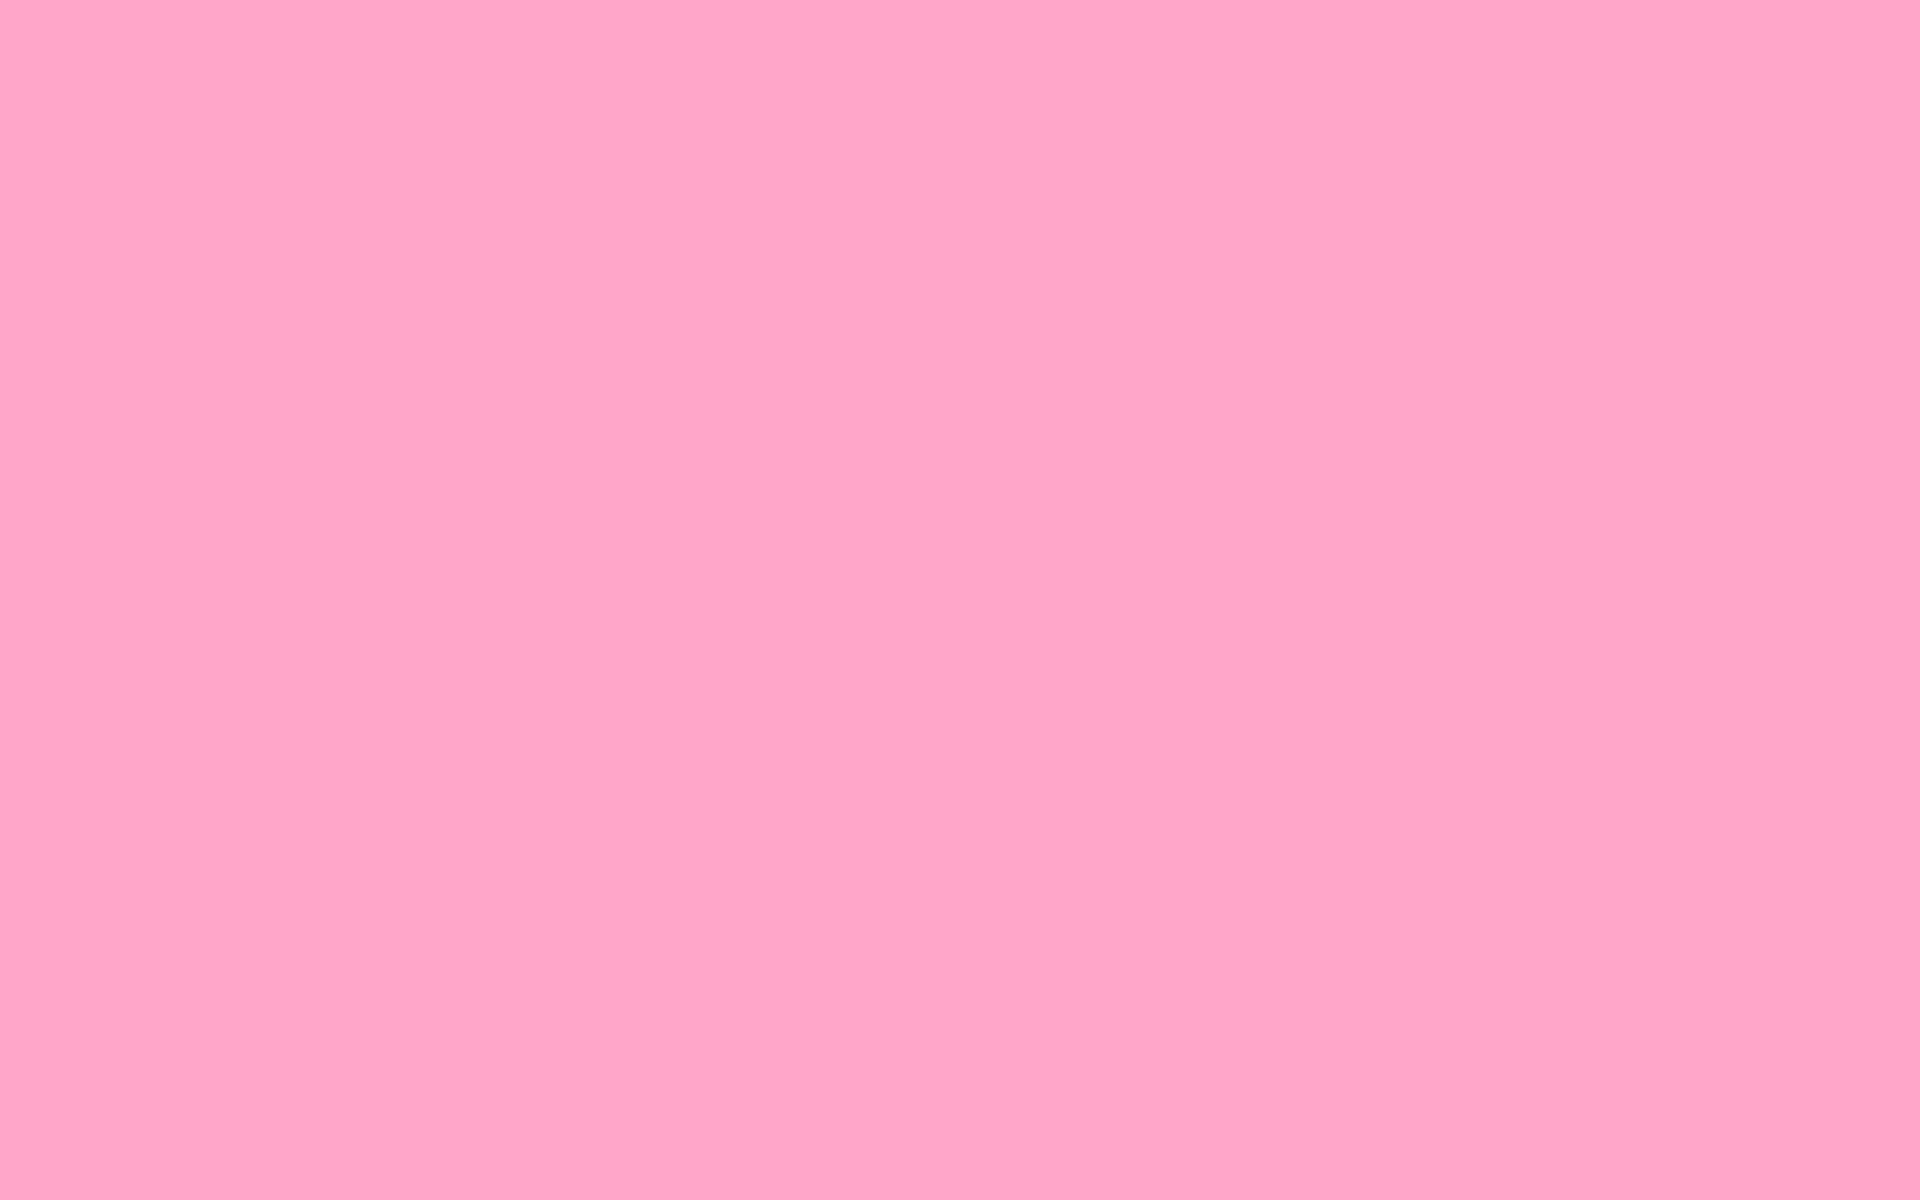 1920x1200 Carnation Pink Solid Color Background